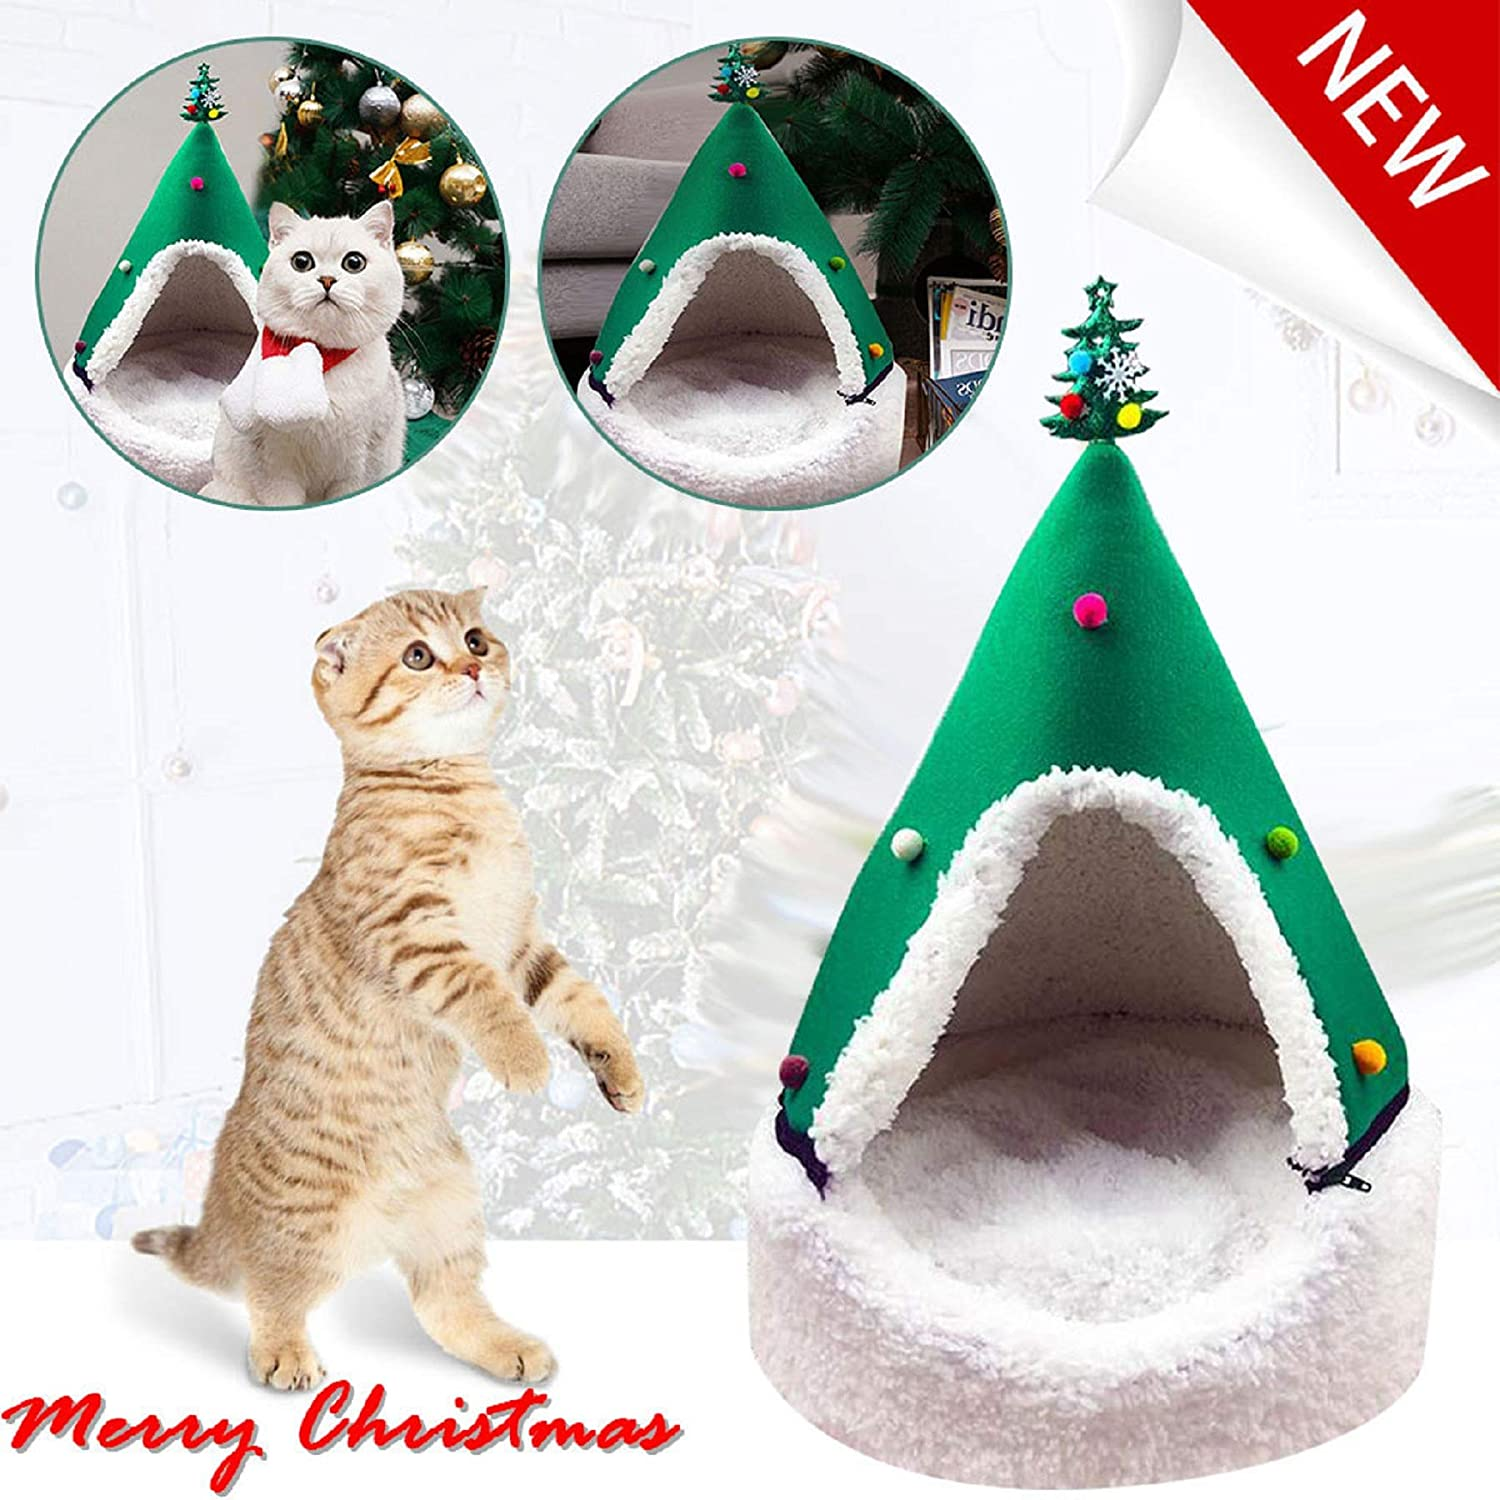 m·kvfa Christmas Tree Kennel Cat House Half Closed Xmas Tree Shape Pet Nest Pet Bed Warm Soft Winter Pet Cat Tent Indoor Cats Cave for Cats and Small Dogs